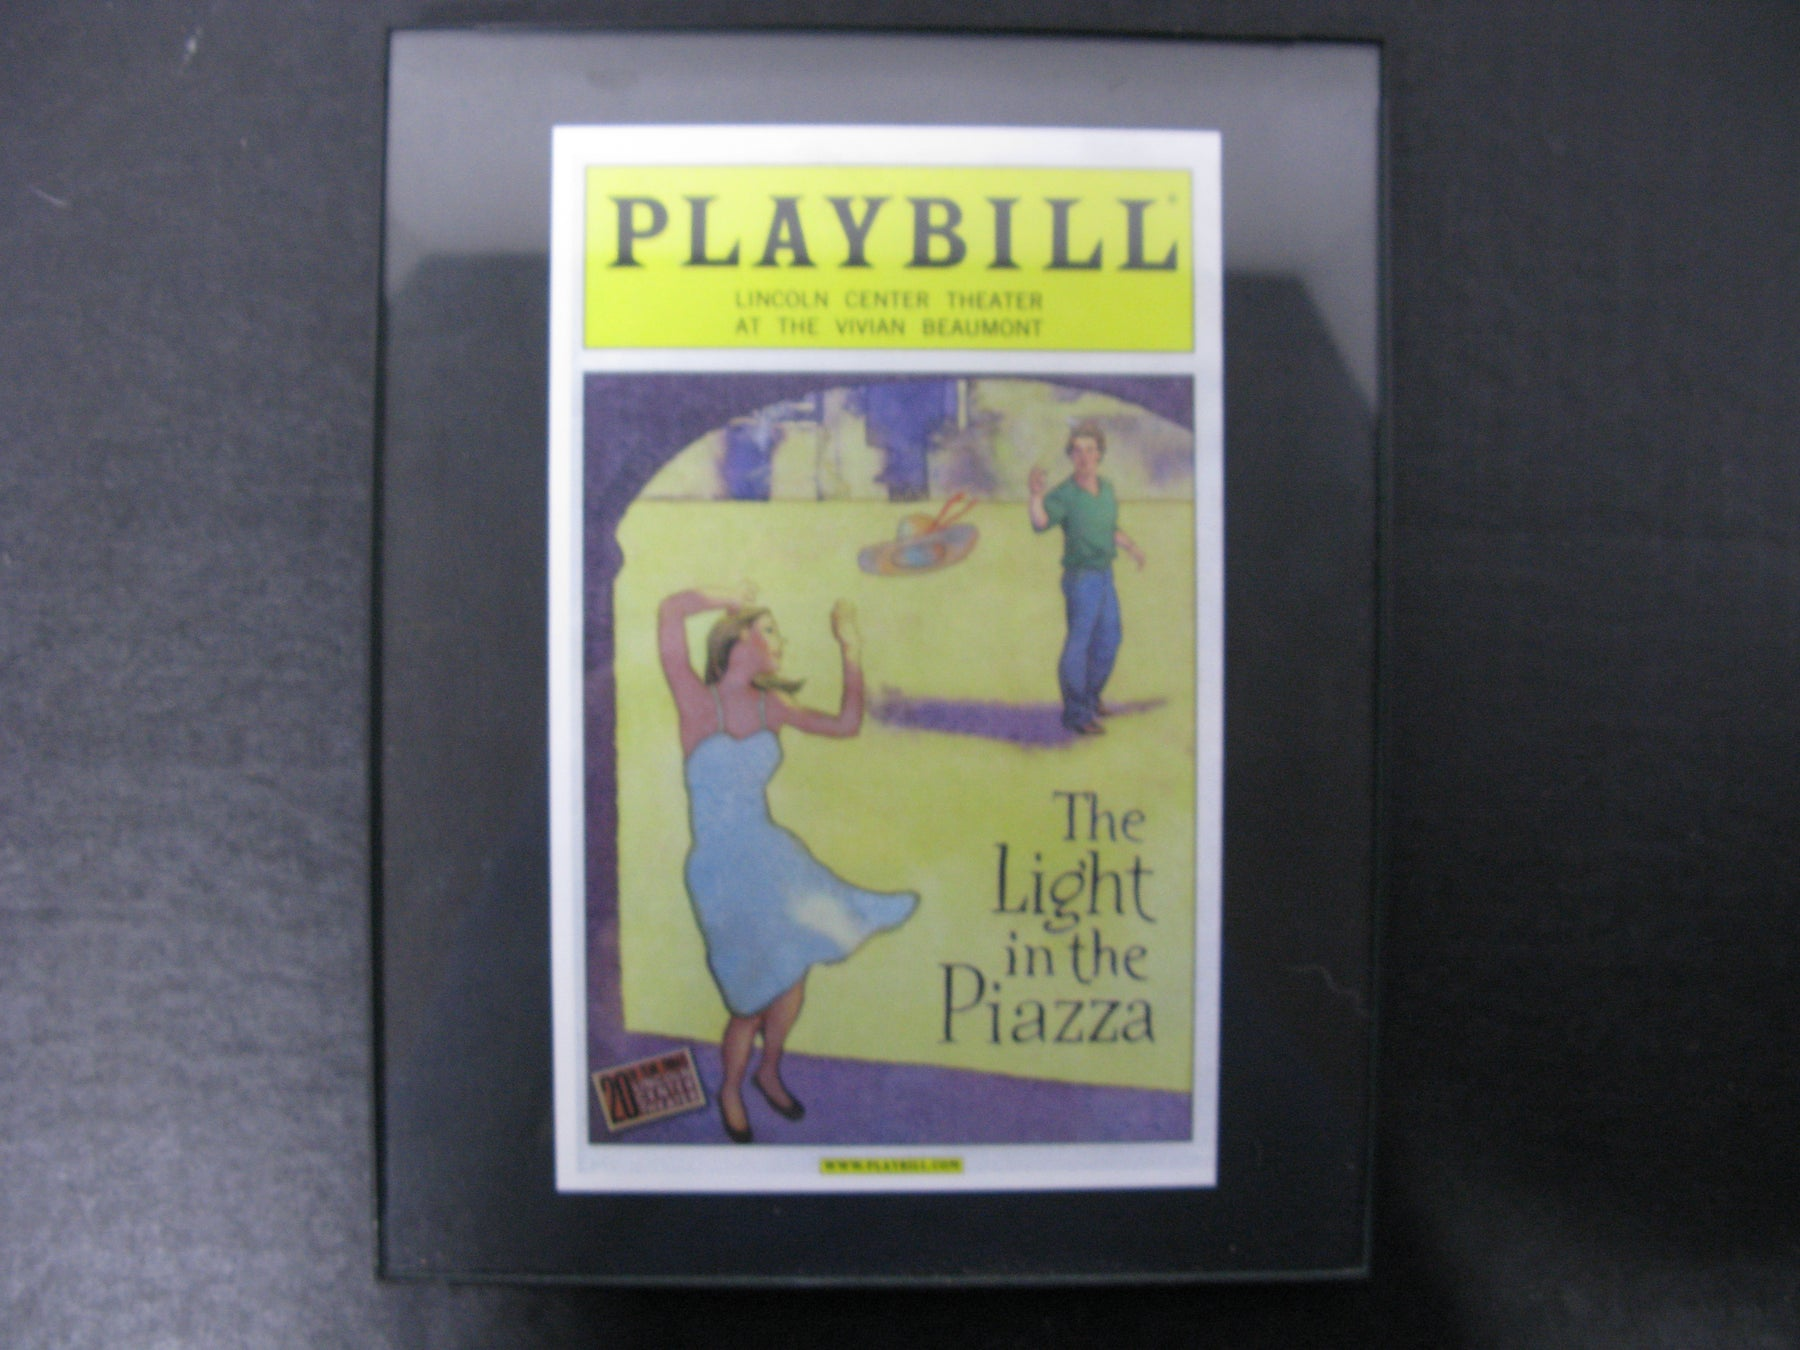 Playbill Lincoln Center Theatre at the Vivian Beaumont the Light in the Piazza